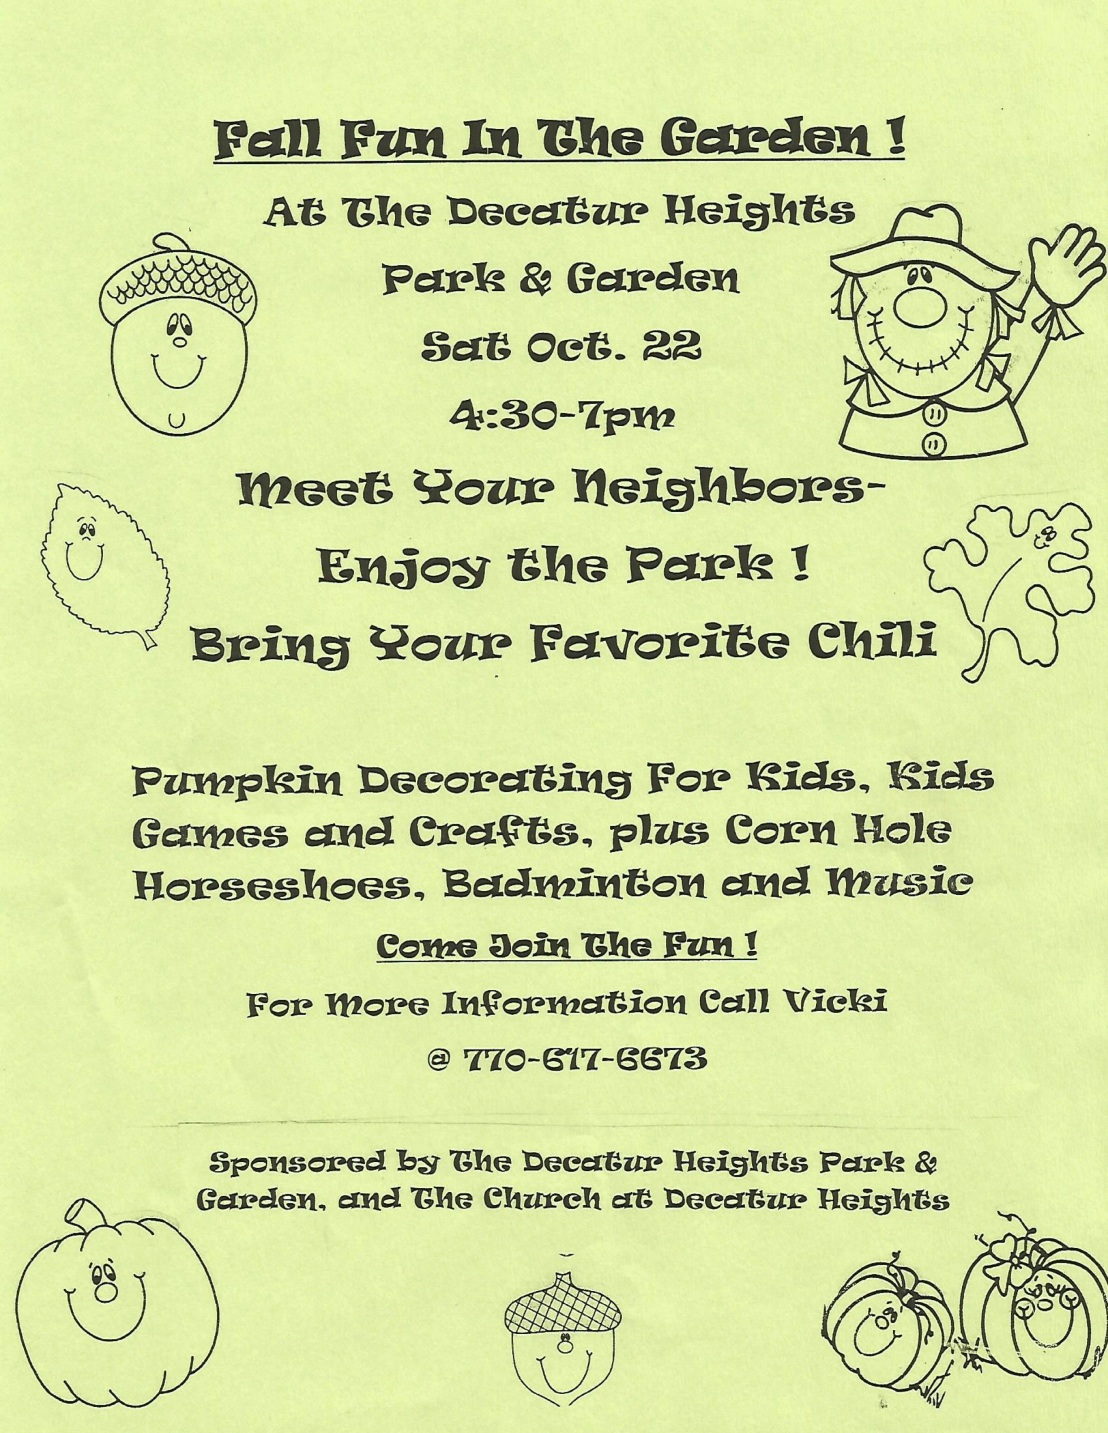 fall-fun-in-garden-event-flyer